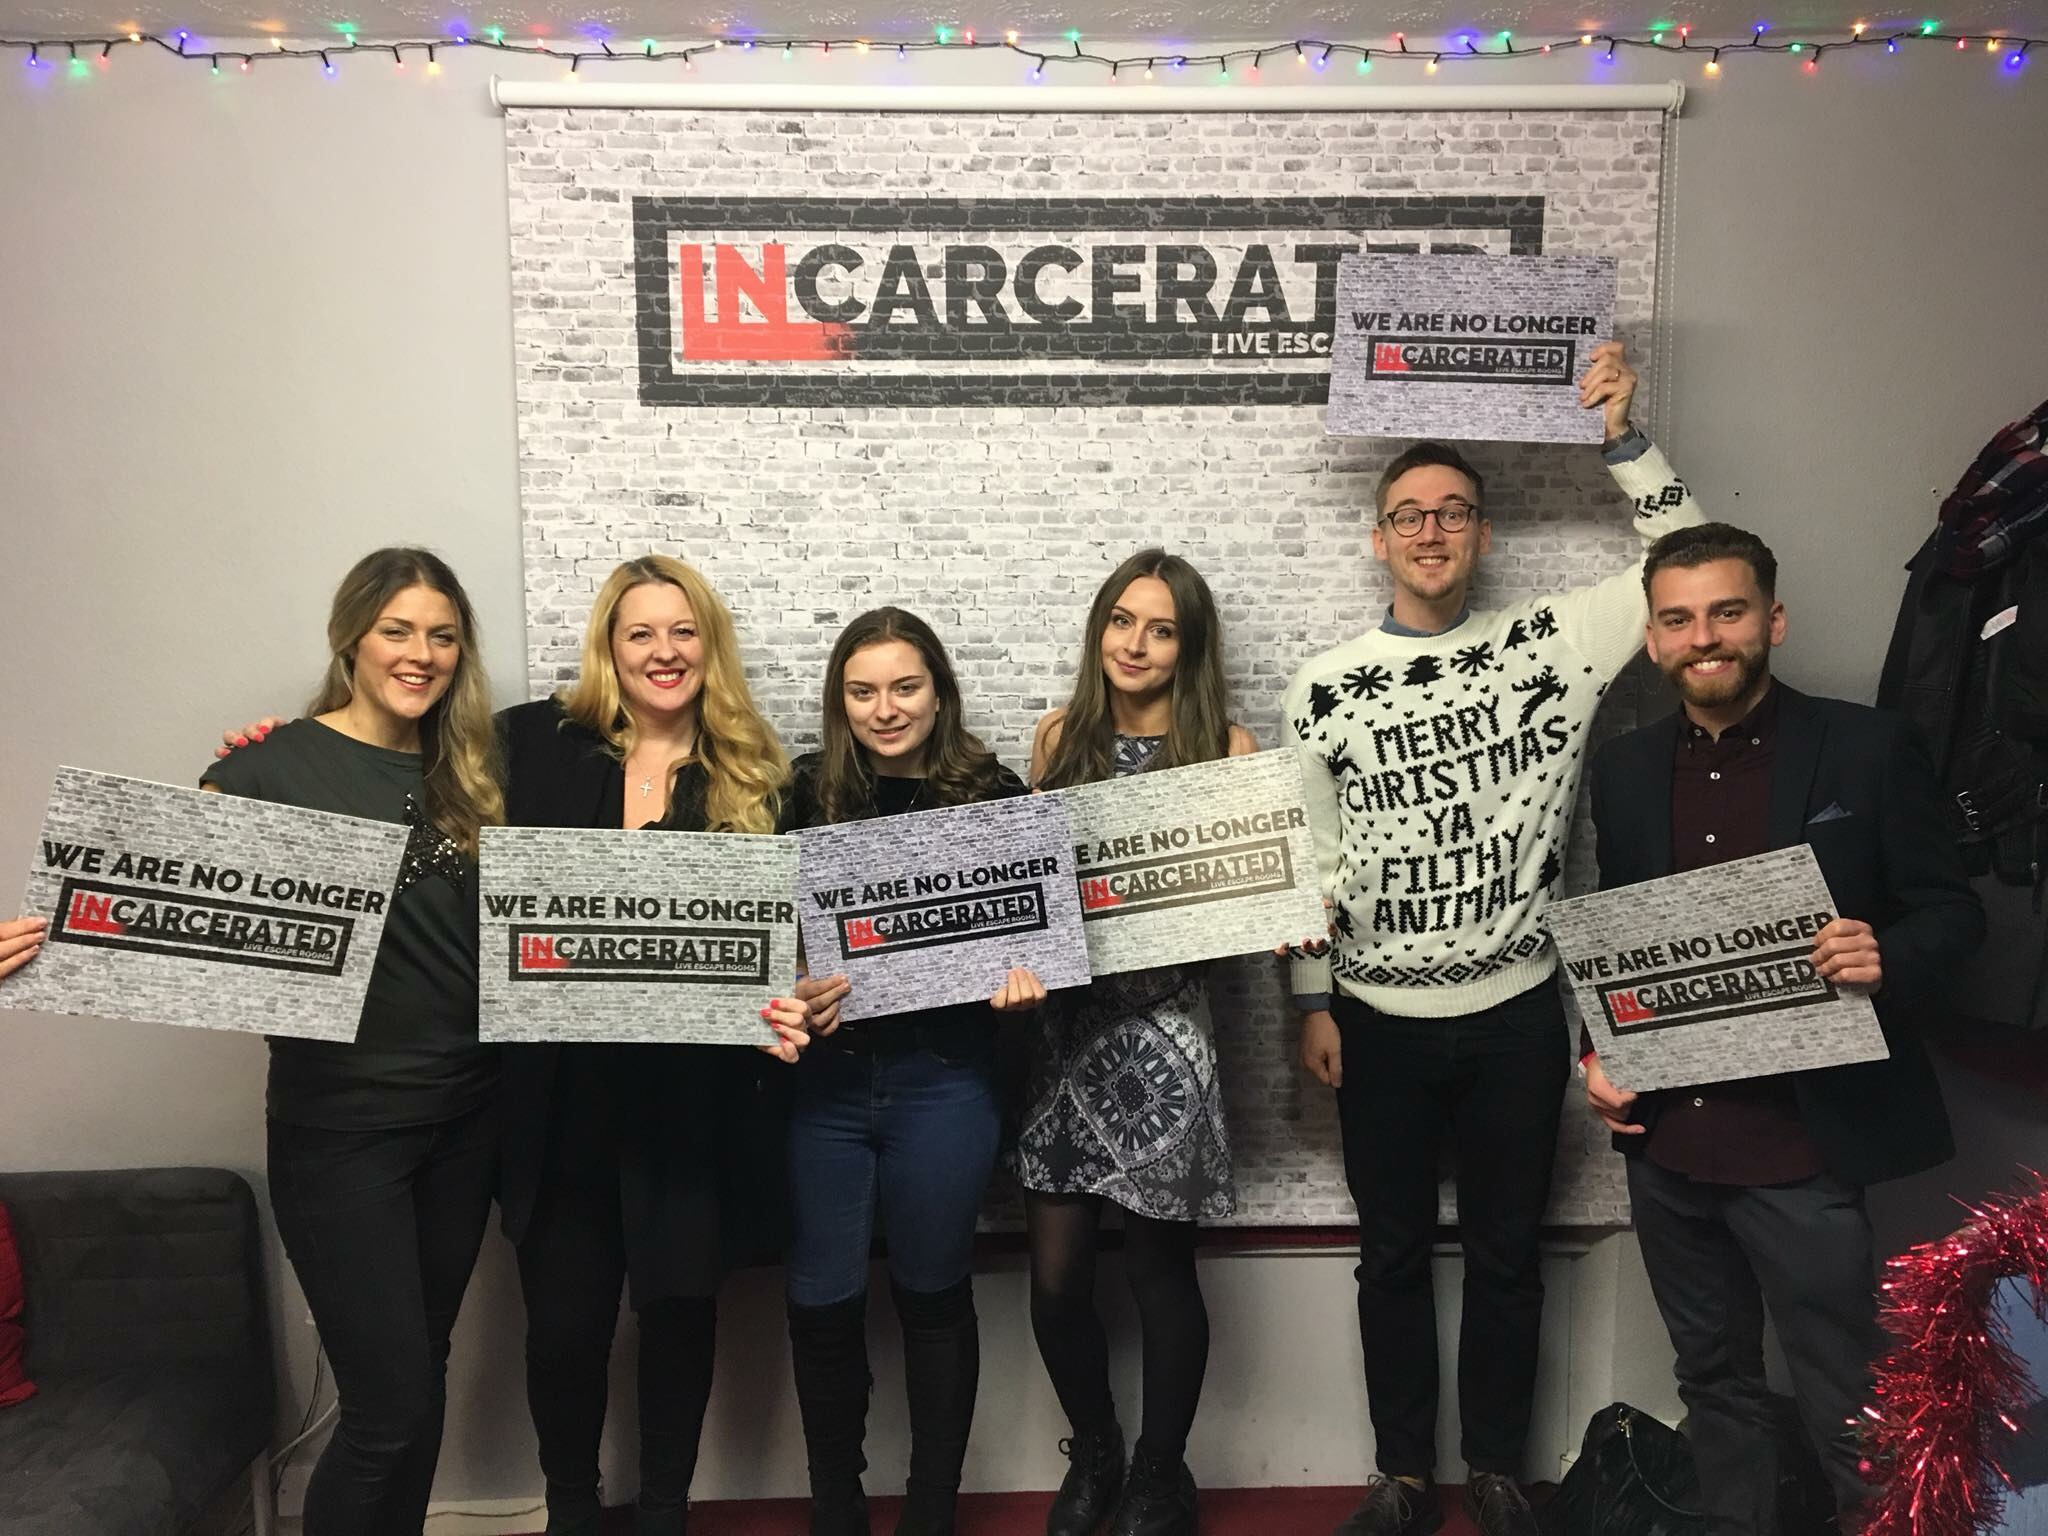 REVIEW: Incarcerated Live Escape Rooms